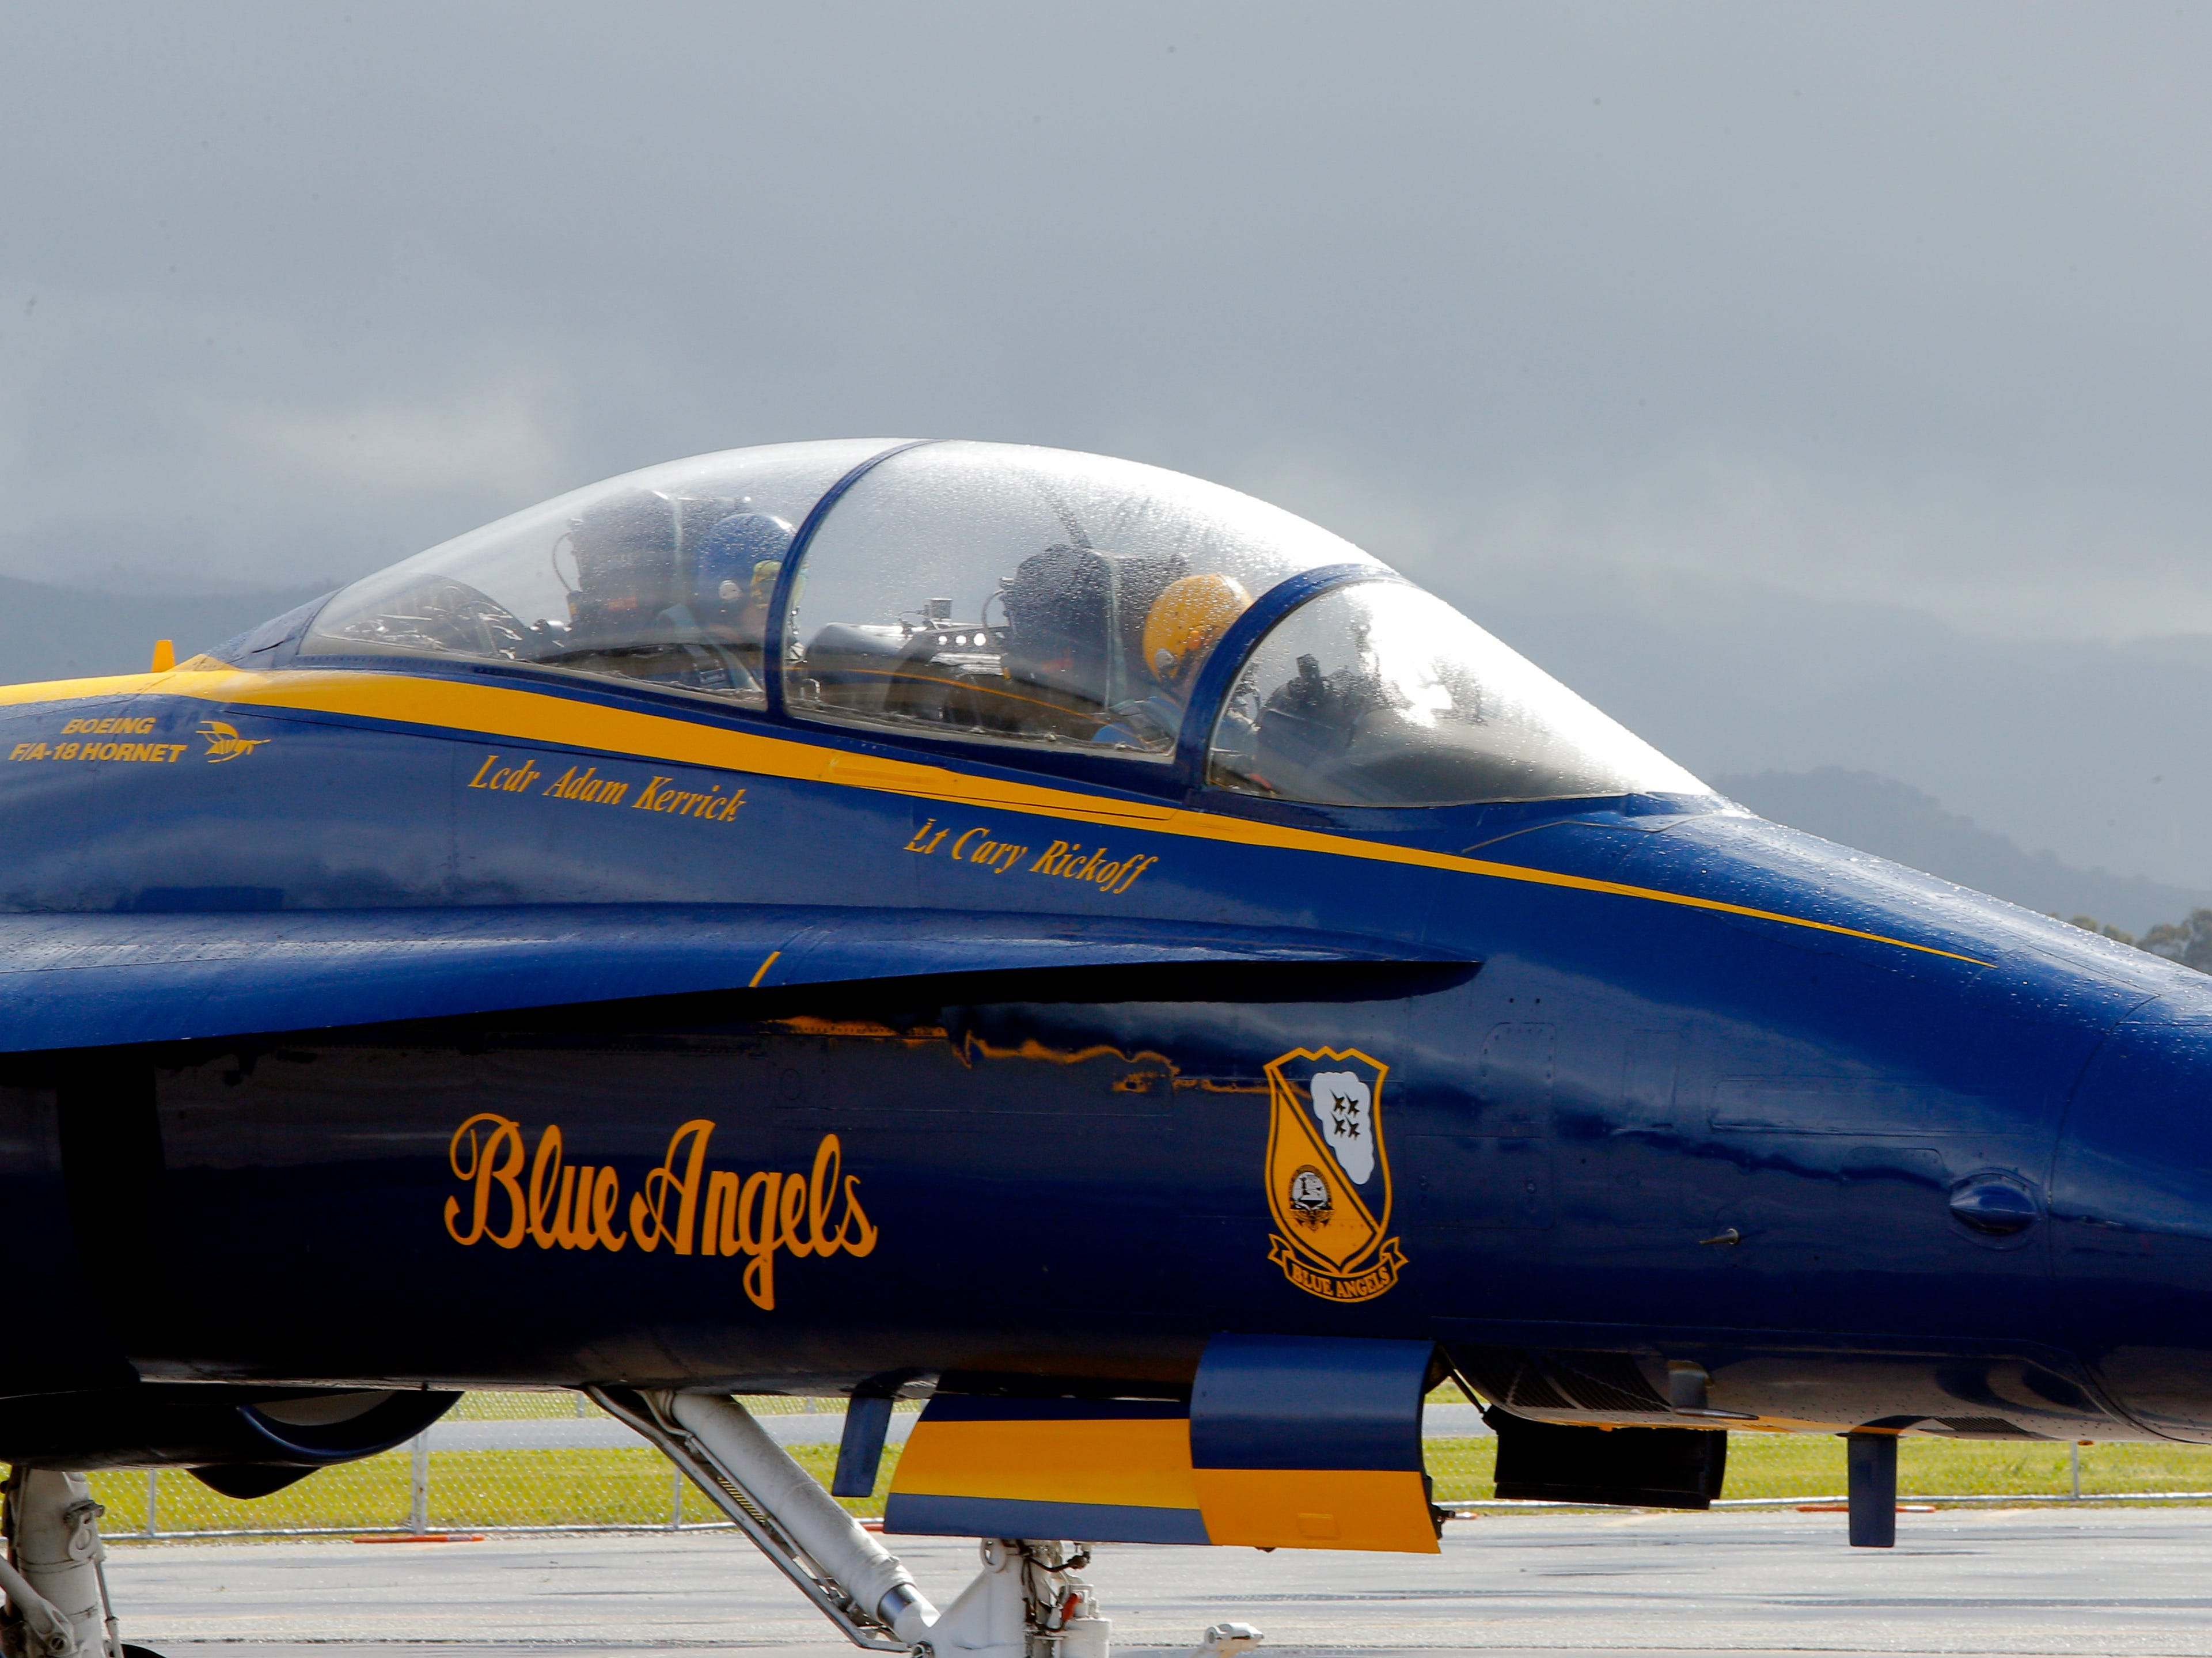 Salinas police officer Daniel Garcia was selected to ride March 20, 2019, with the Blue Angels, who are performing in the California International Airshow Salinas.